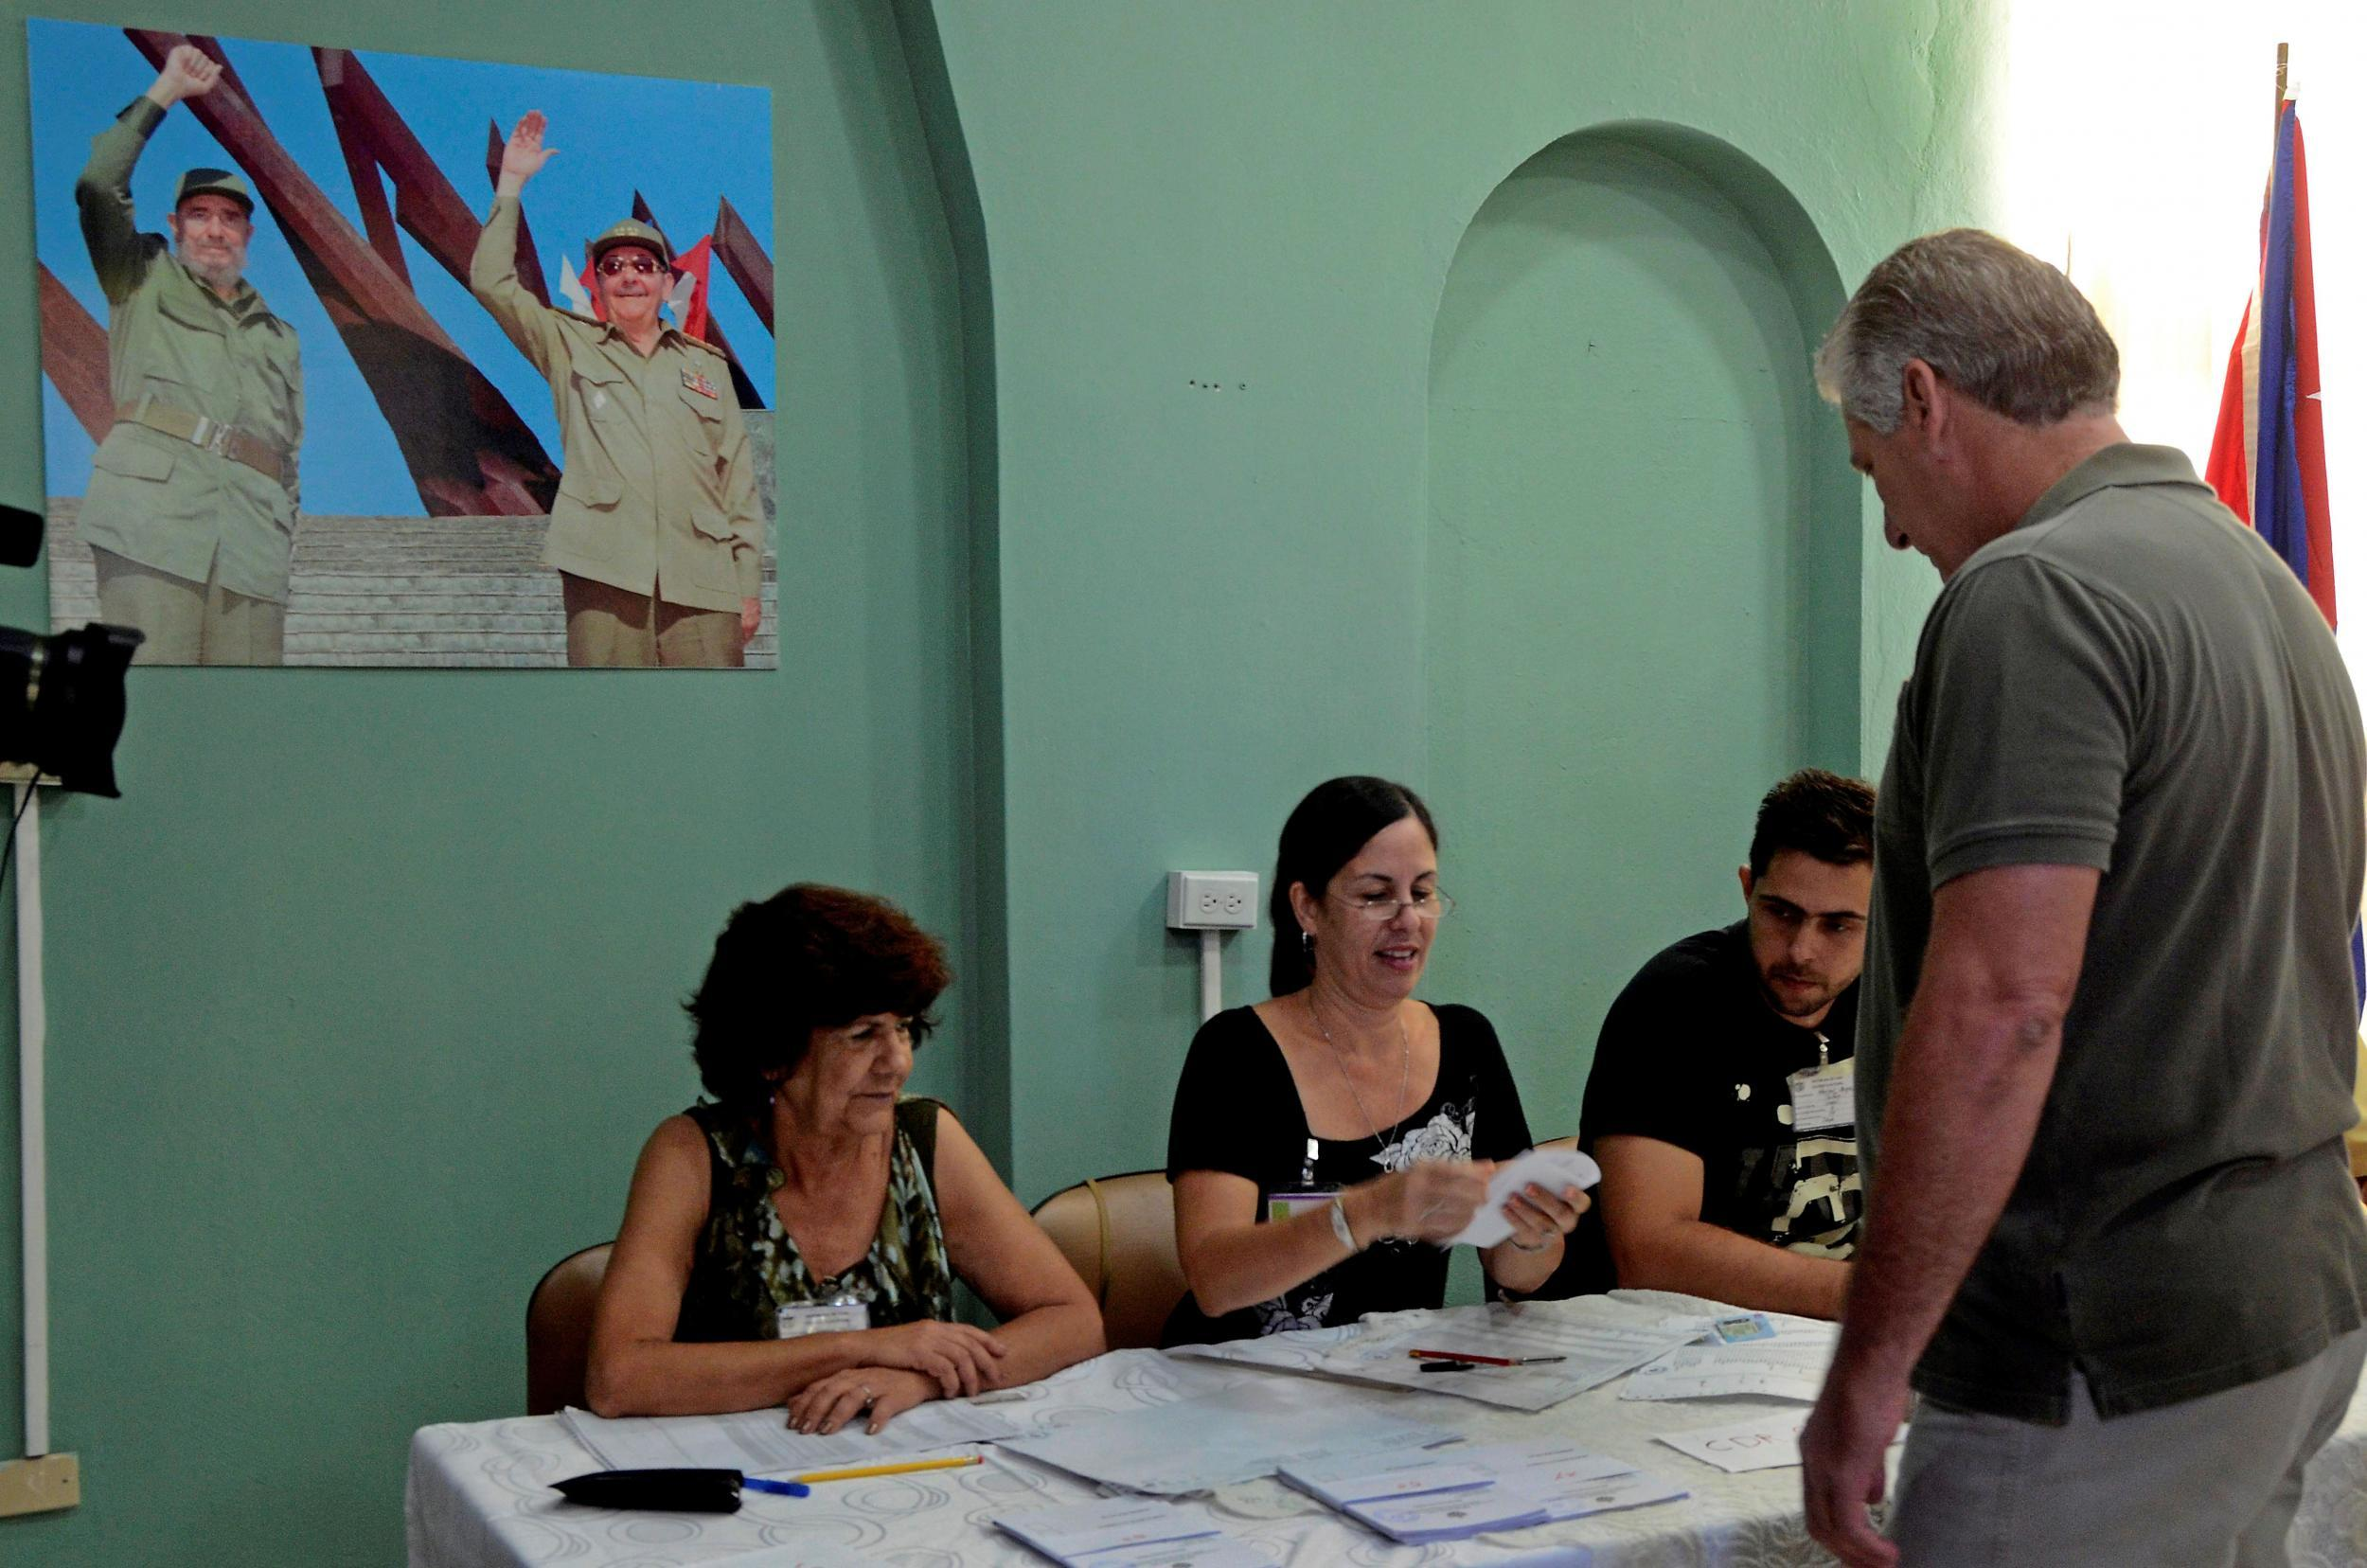 Cuba election: When is it, who is voted in, and what does it mean for Raul Castro and the presidency?